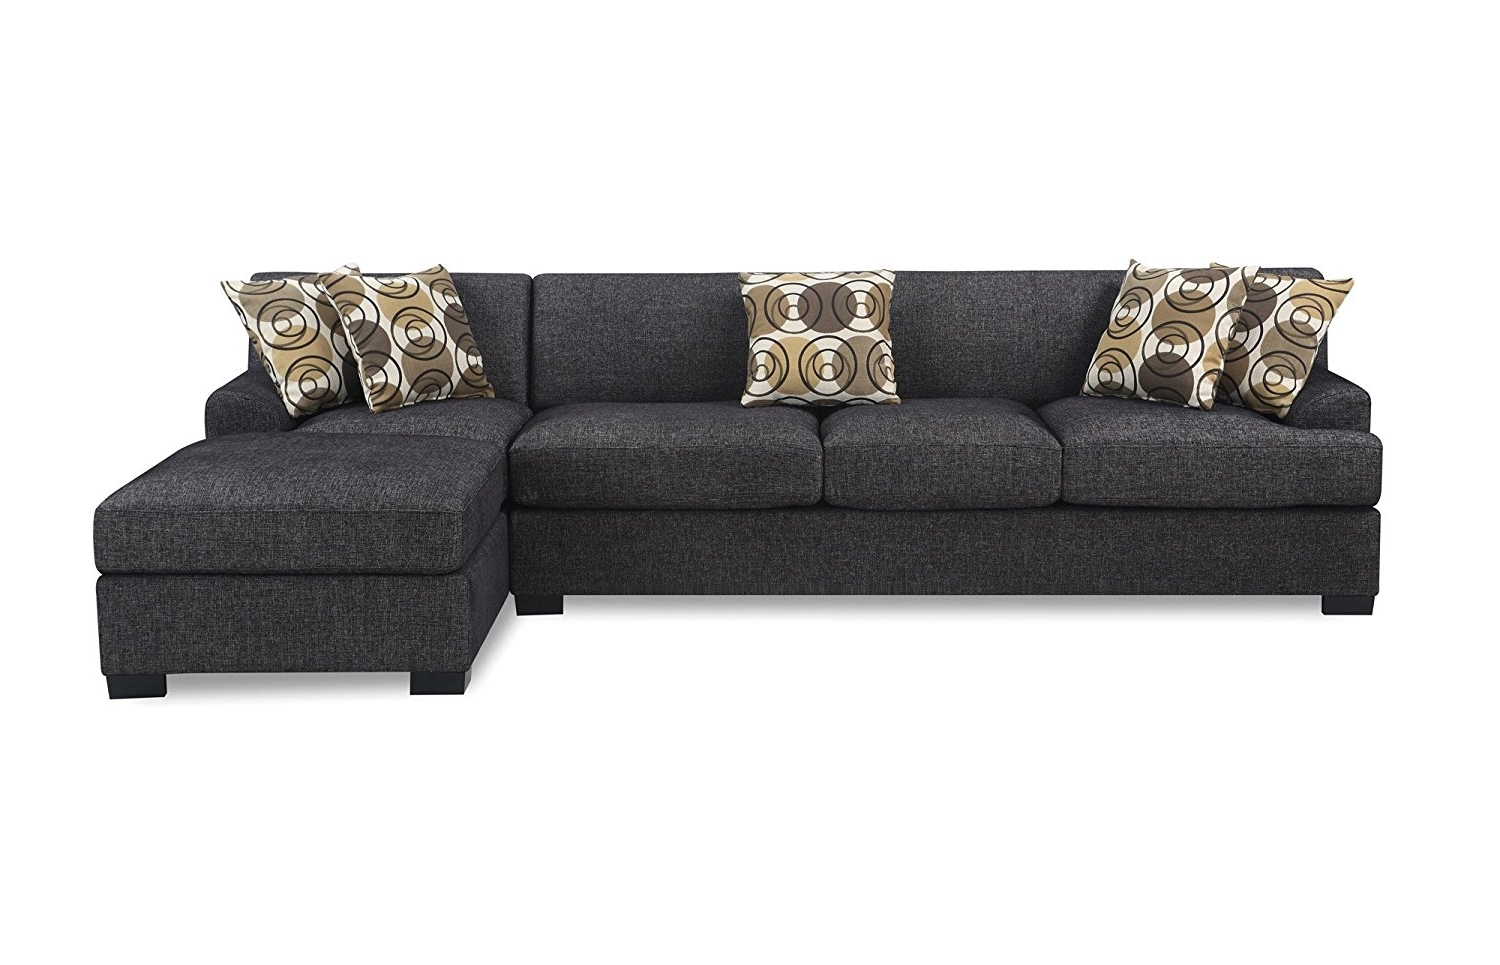 Latest Amazon: Bobkona Poundex Benford Collection Faux Linen Chaise For Sectional Sofas At Amazon (View 12 of 15)